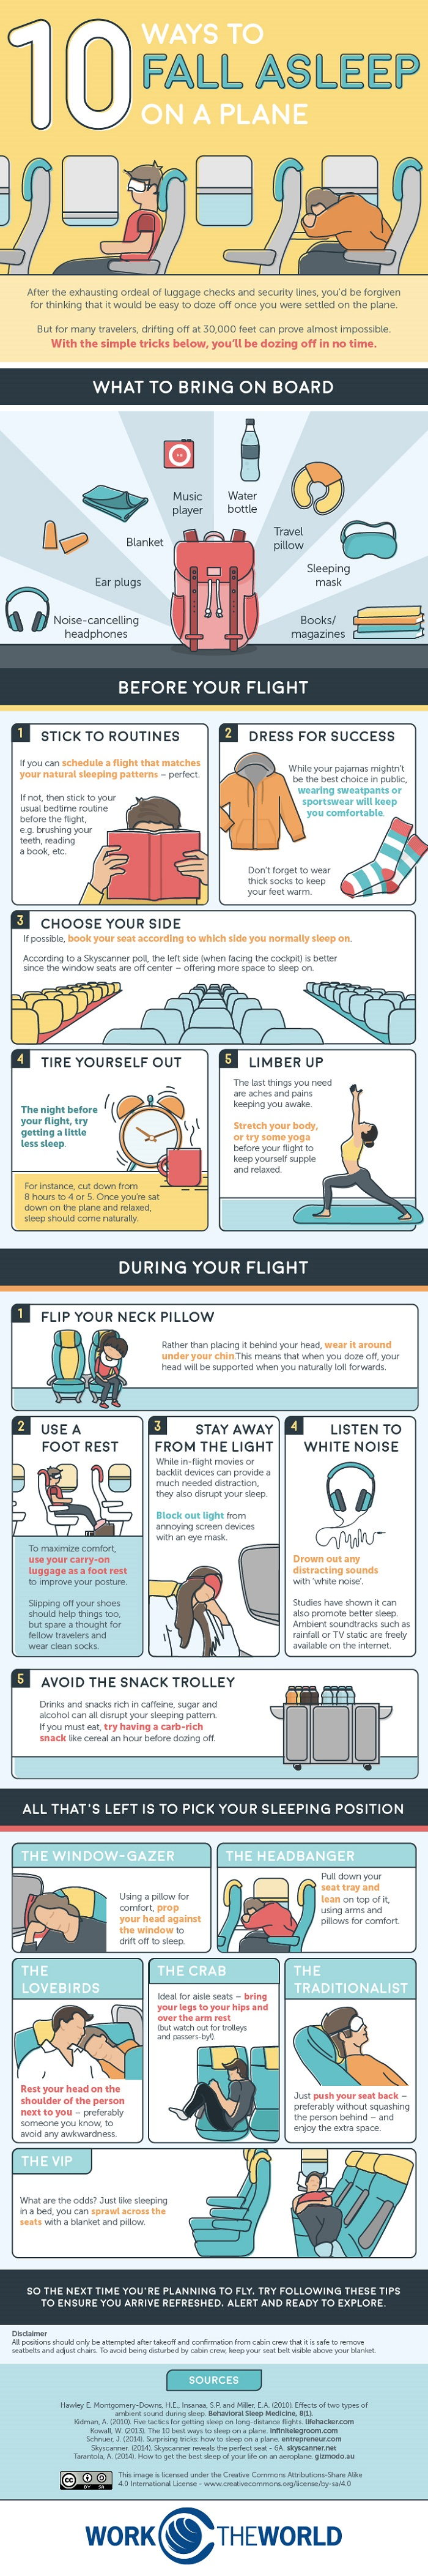 To combat jet-lag: Sleep as much as possible on the plane ride over and then STAY AWAKE throughout your first day. It will be hard. You will be grumpy. But stay awake until at least 7ish if possible--so easy to ruin several days by screwing up your sleep cycle!